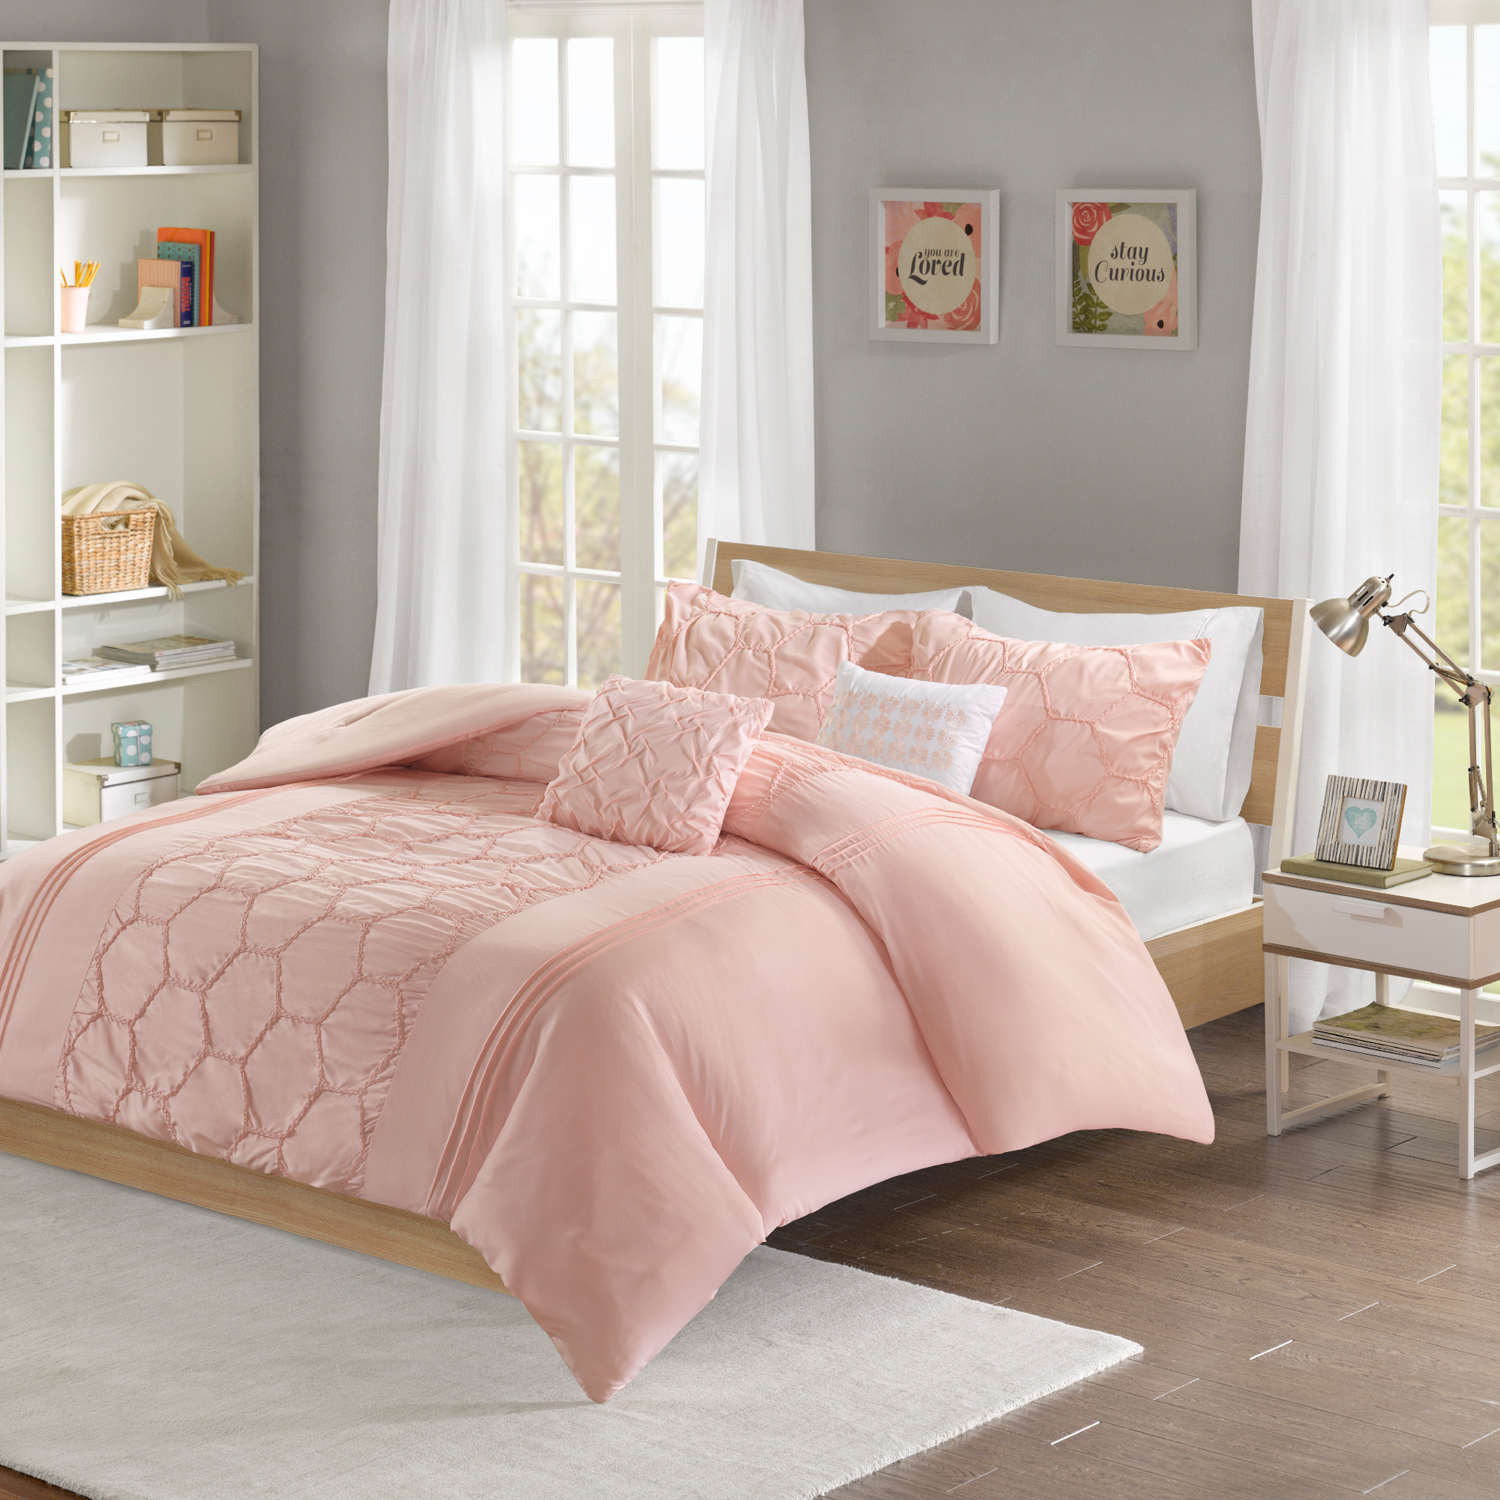 Blush Etta Comforter Set Twin/Twin XL